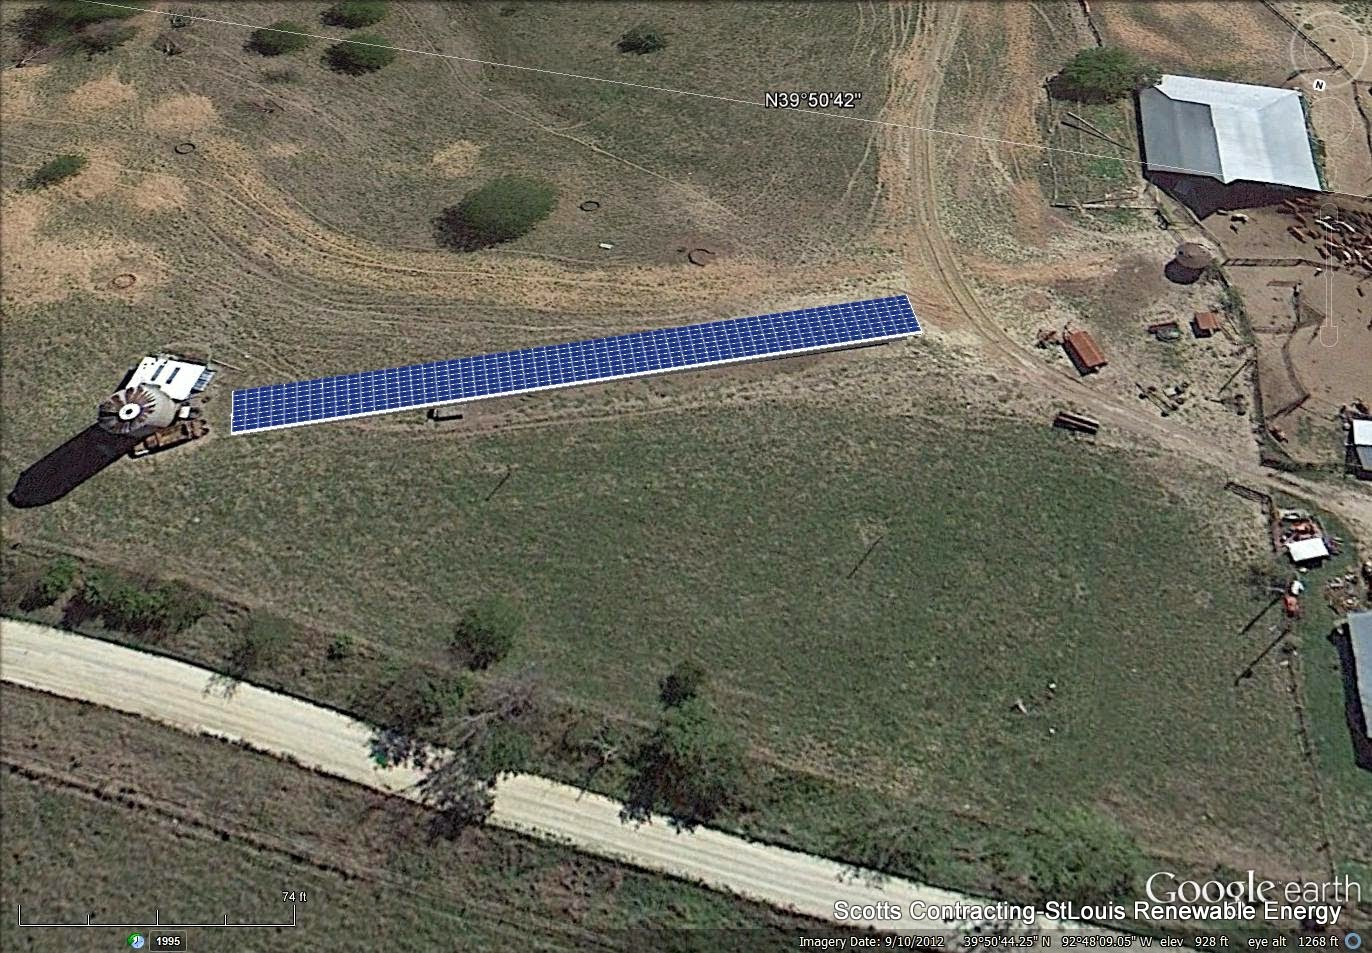 Birds Eye view of the SolarPower Feed Bunk Cover Shade, Cattle Pens, Barns, and Silo